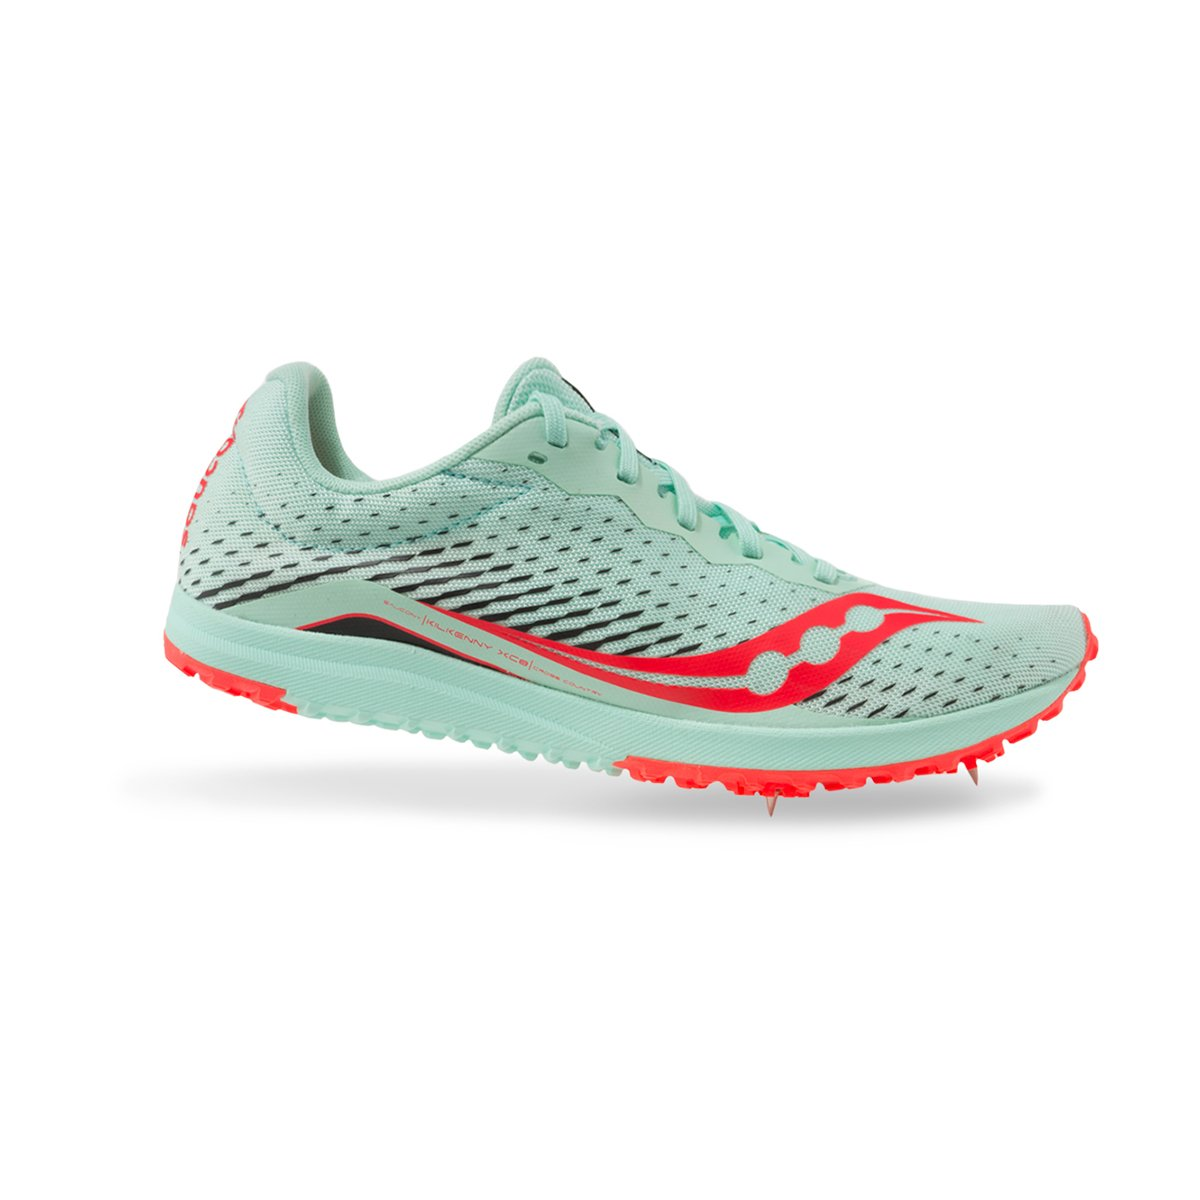 84a1aed5d655f Track Shoes & Track Spikes - Toronto | The Runners Shop